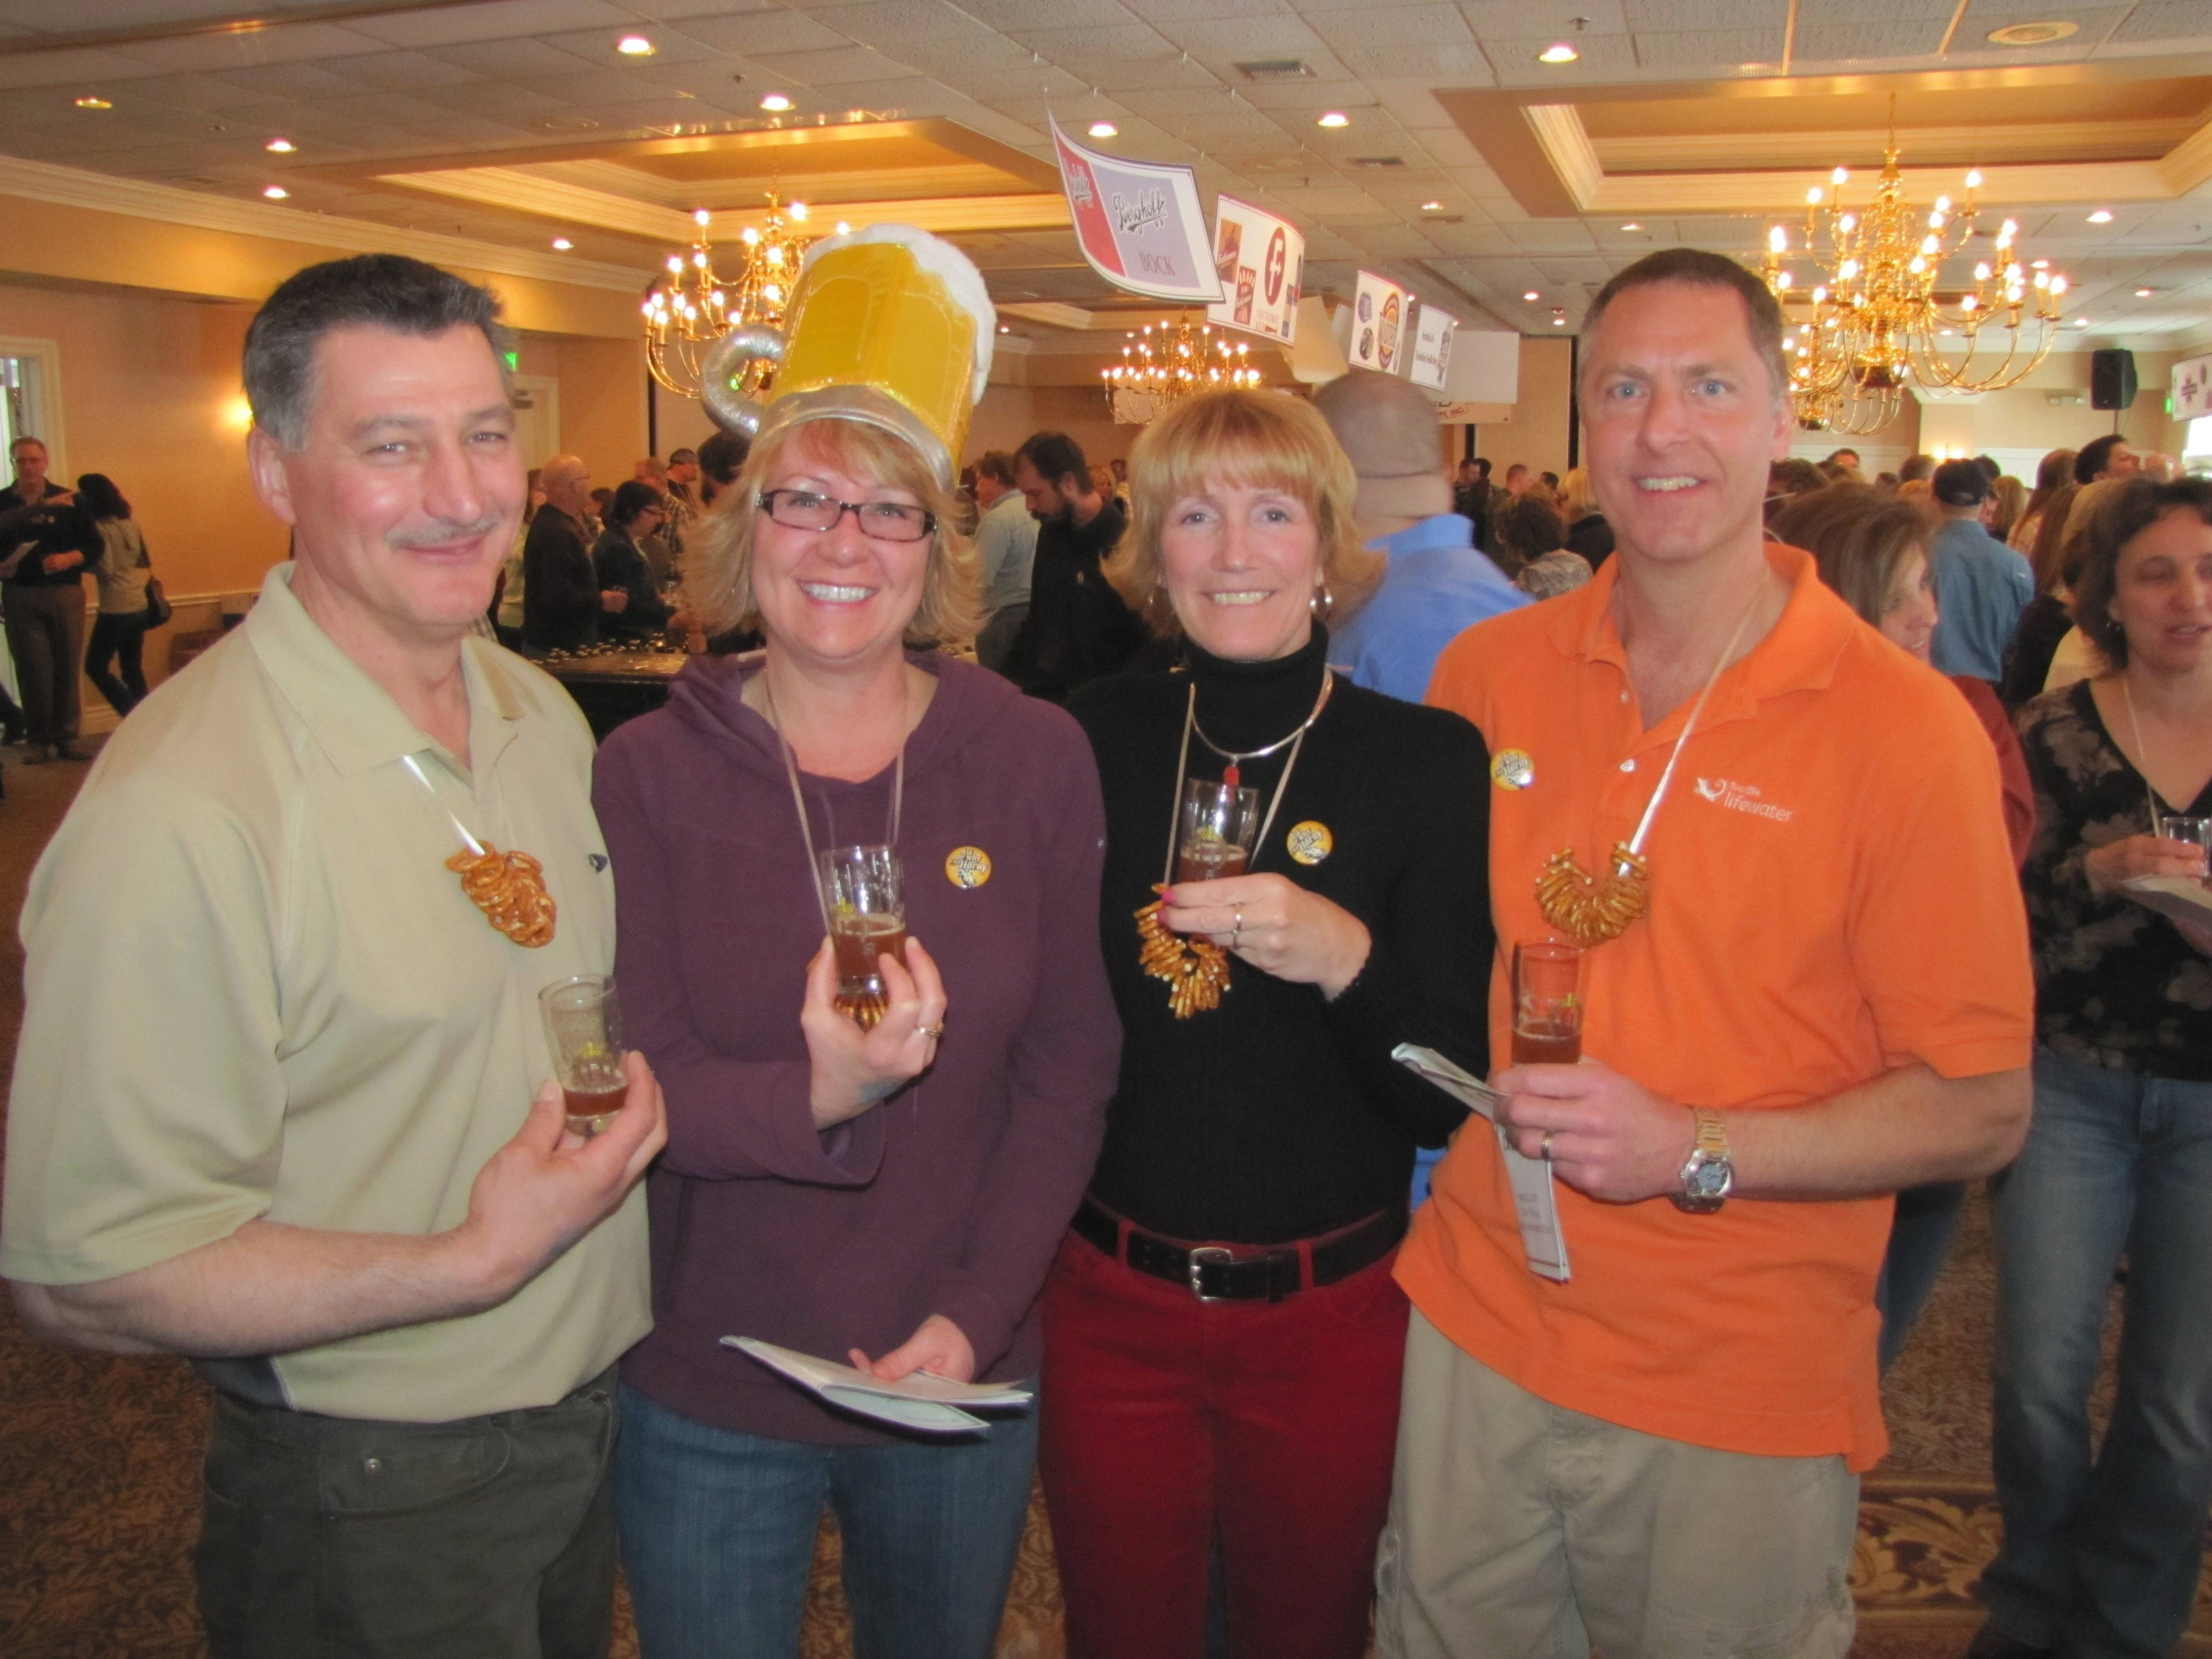 It's nothing but brewskies at the 3rd annual Heidel House Brew Fest in Green Lake, Wis., March 22.